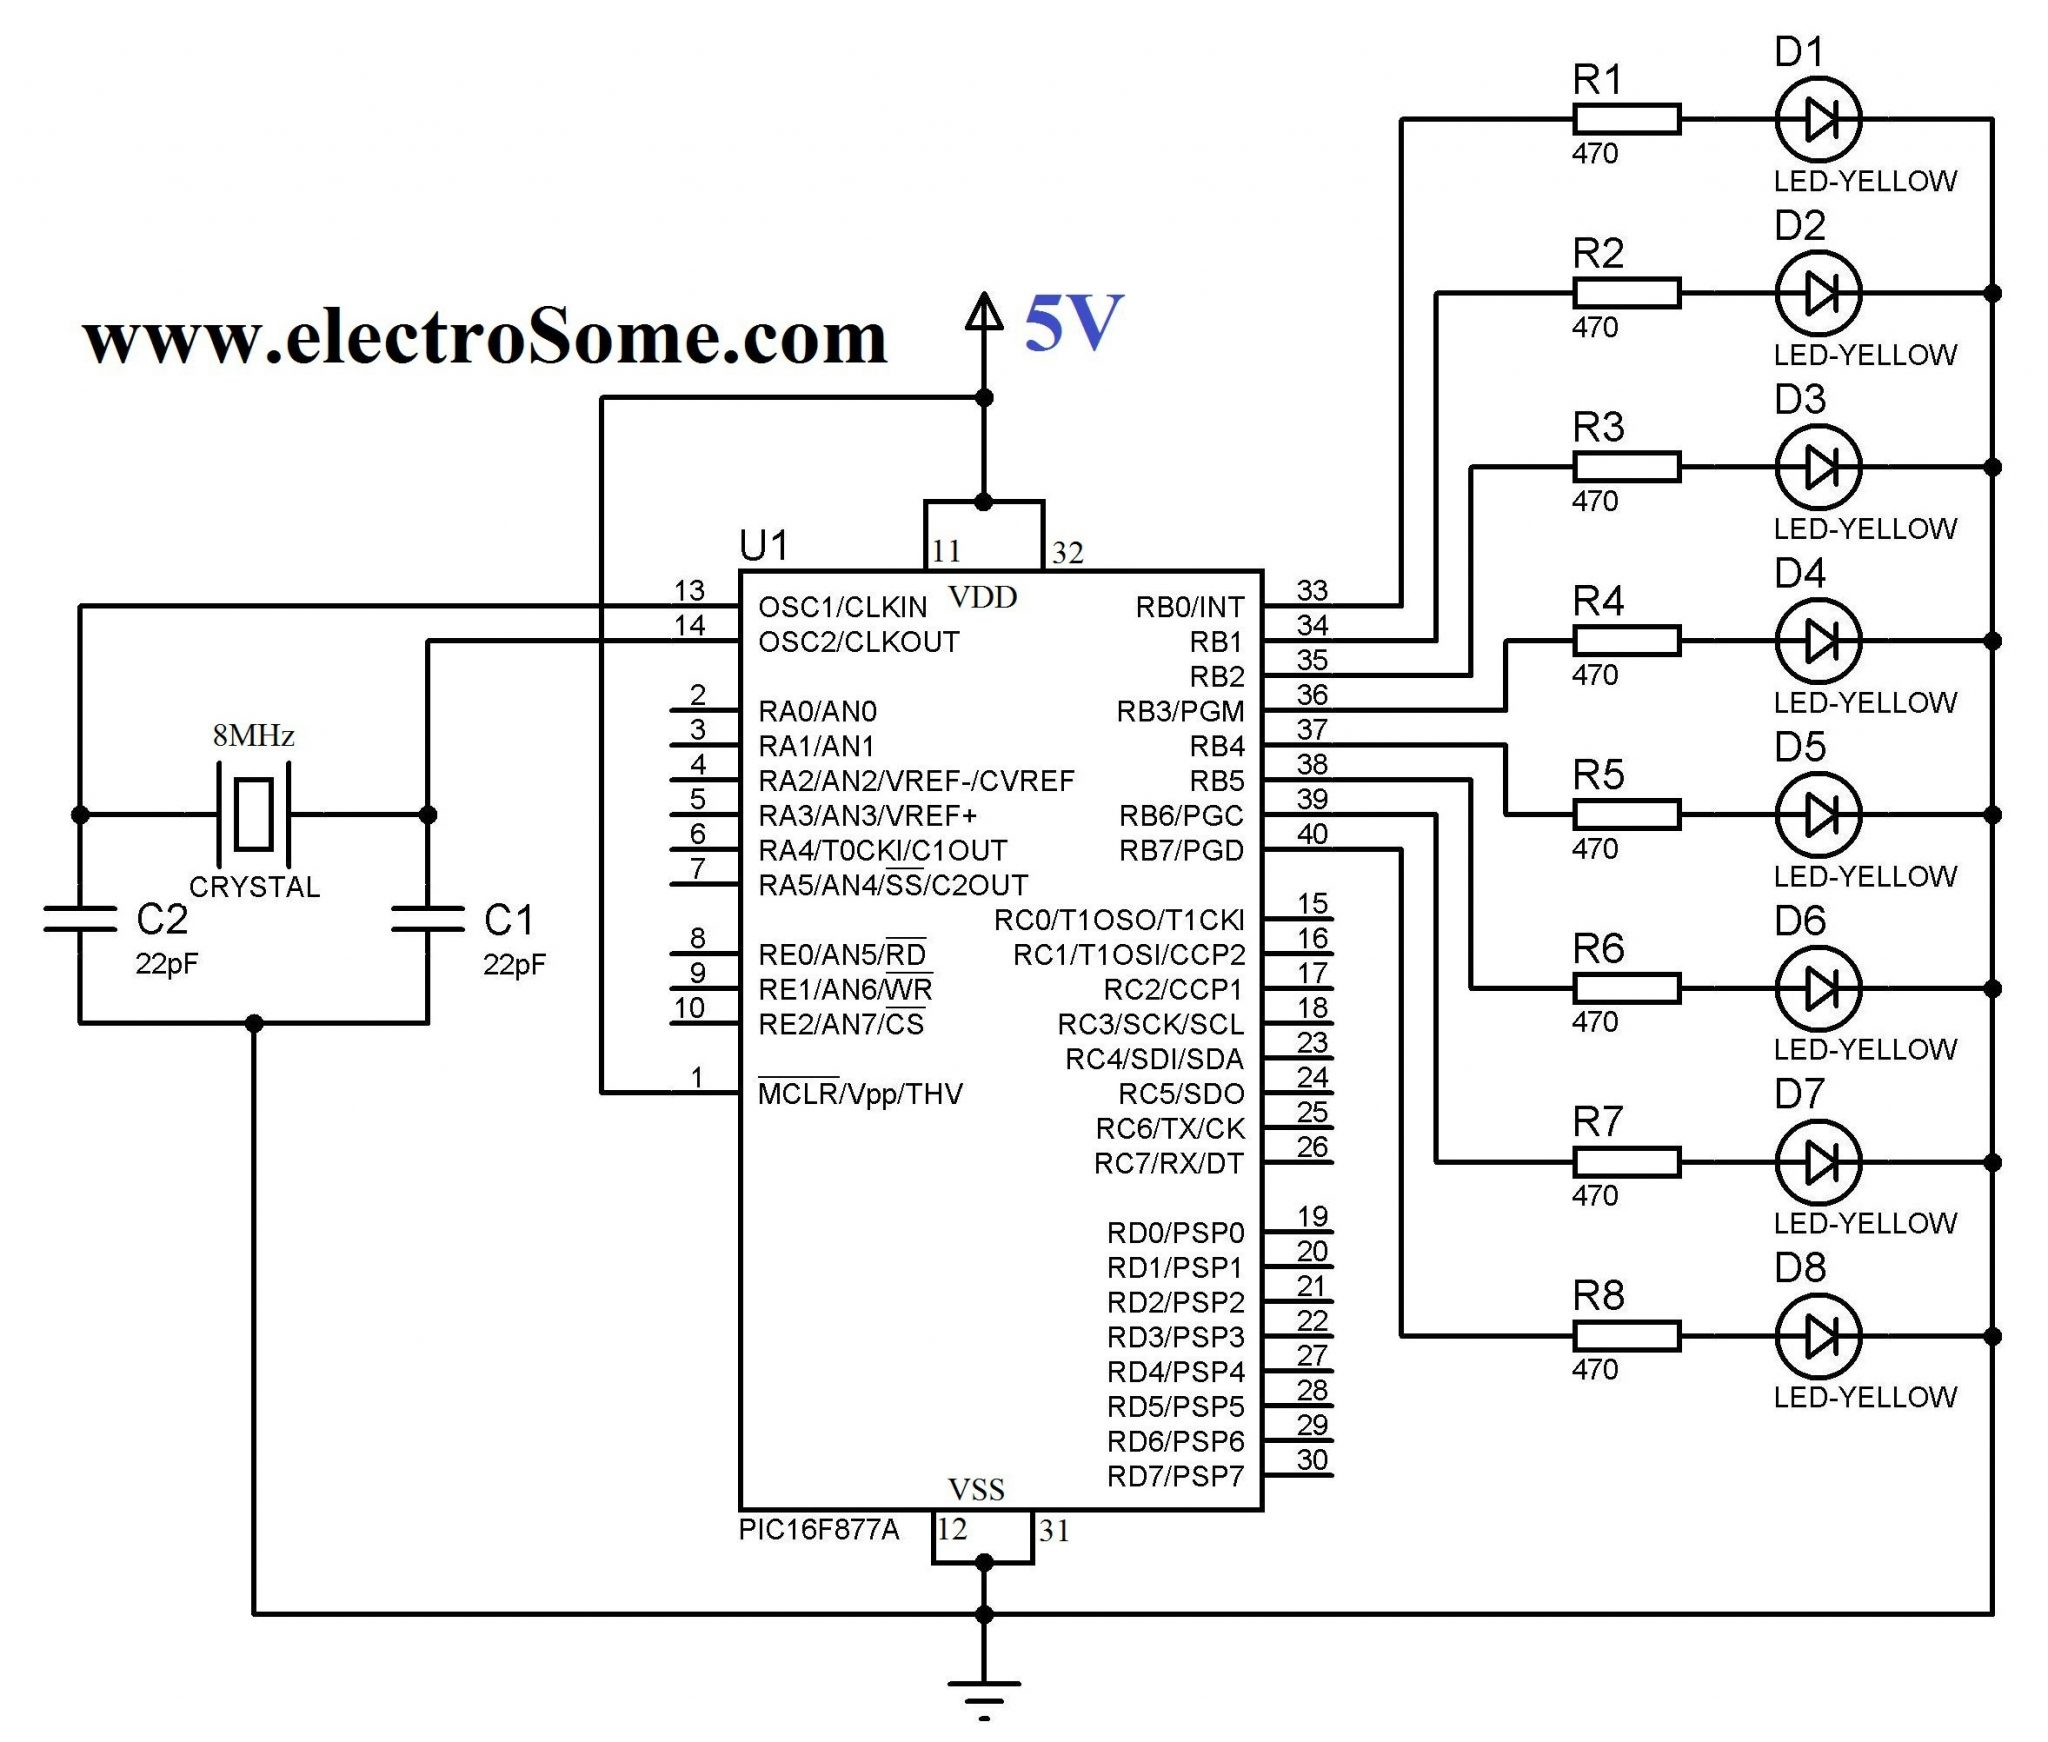 Blinking Led Using Pic Microcontroller Hi Tech C Compiler And Mplab 8051 Projects 038 Circuits Circuit Diagram